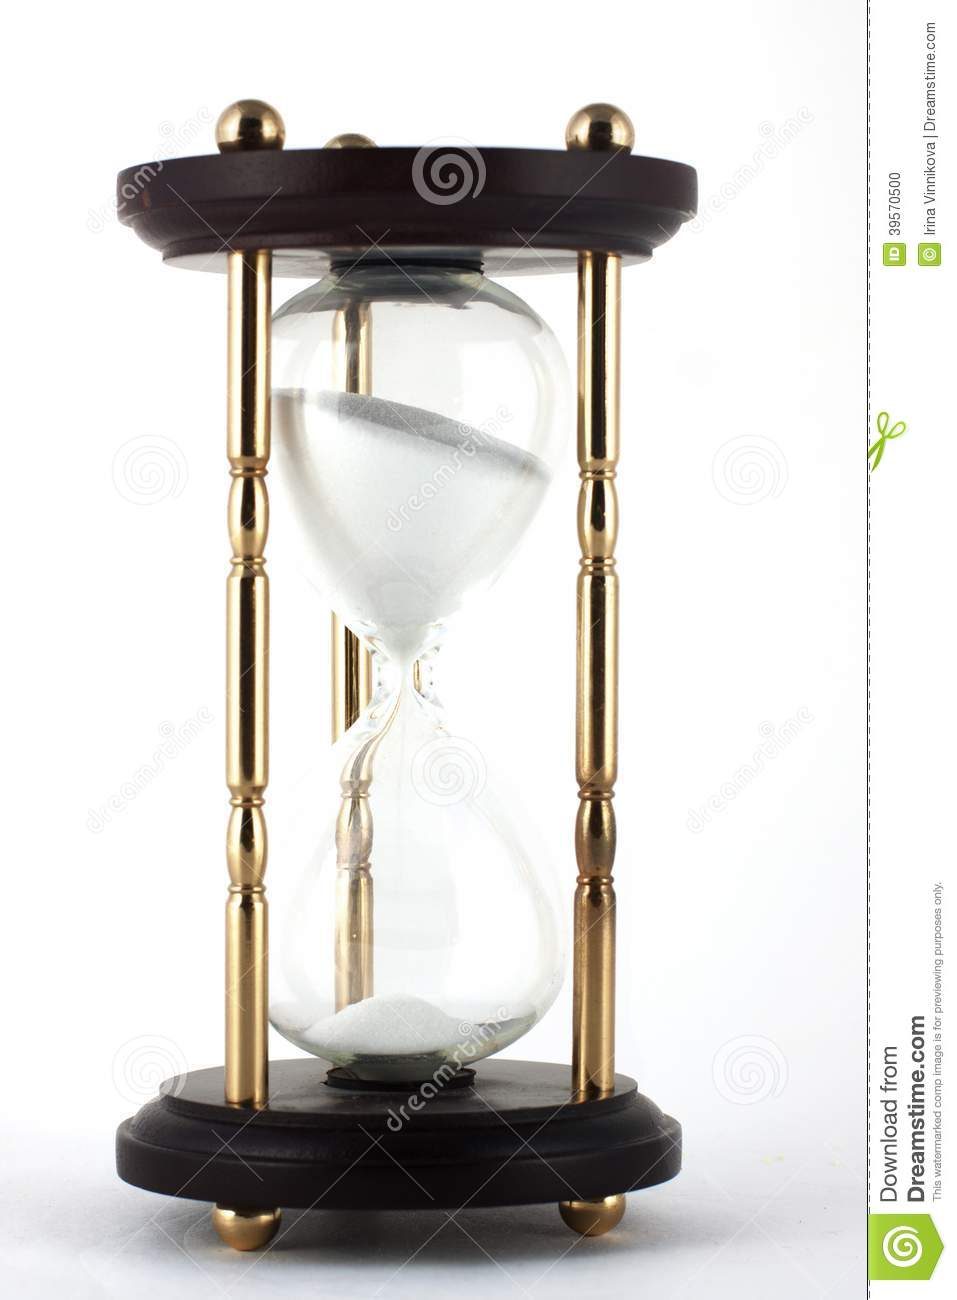 sand hourglass stock photo image of background glass